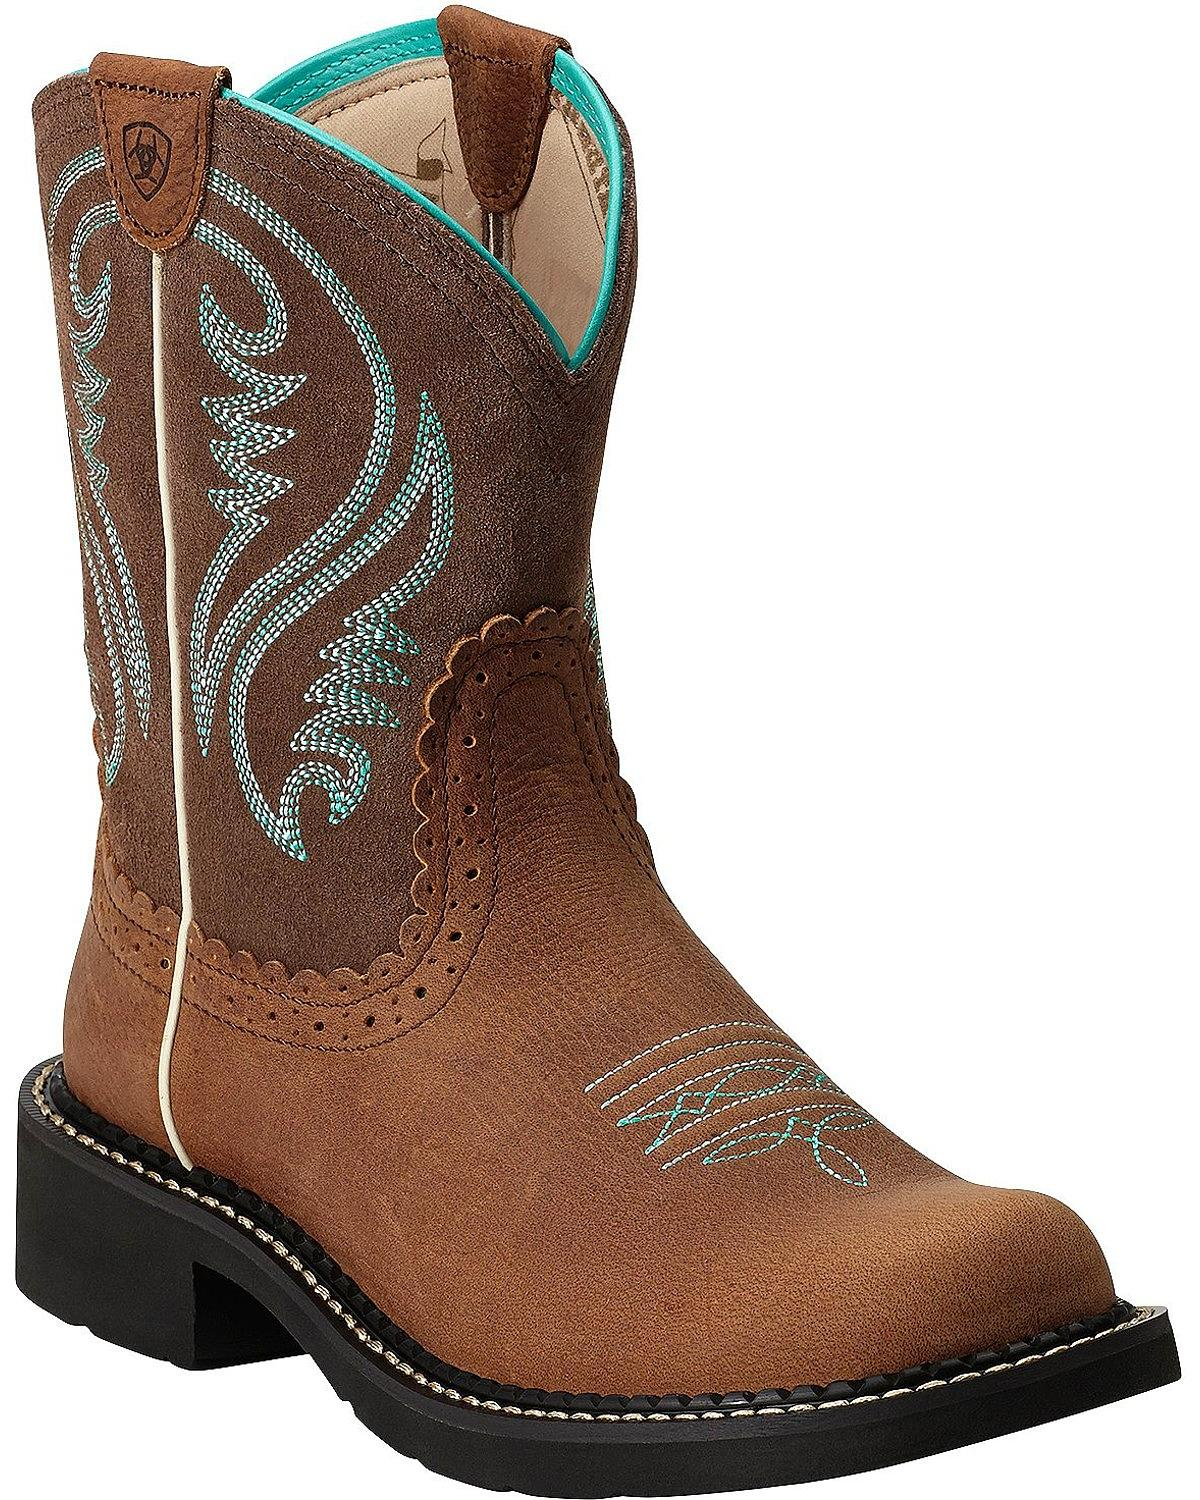 "Ariat 10014080 Fatbaby Heritage 8"" Pull On Cowboy Boot by Ariat"